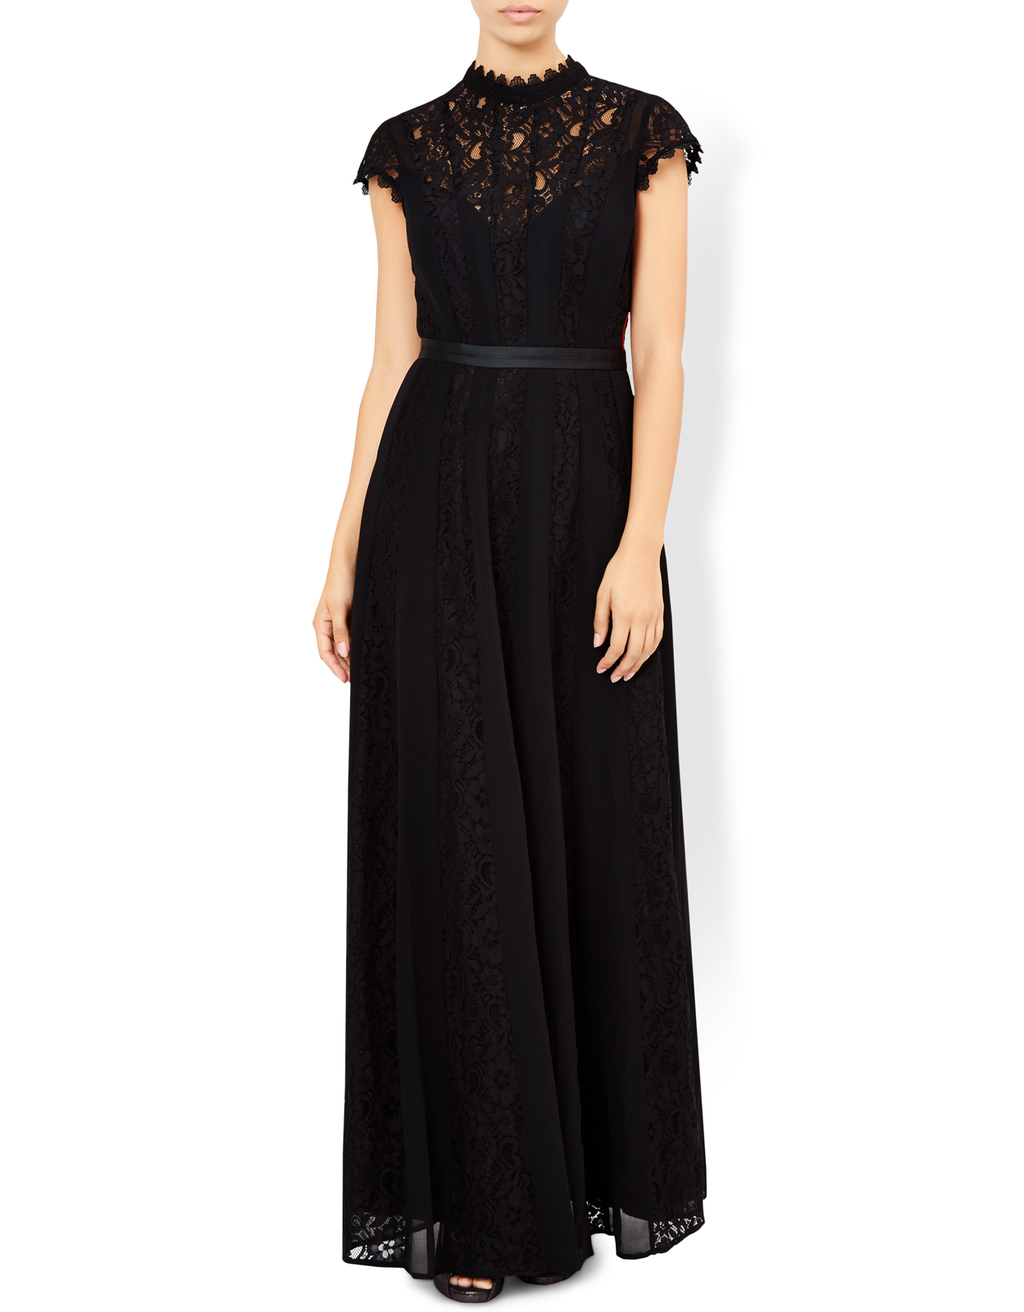 Roxana Maxi Dress - sleeve style: capped; pattern: plain; style: maxi dress; neckline: high neck; predominant colour: black; length: floor length; fit: soft a-line; fibres: polyester/polyamide - 100%; occasions: occasion; back detail: keyhole/peephole detail at back; sleeve length: short sleeve; texture group: sheer fabrics/chiffon/organza etc.; pattern type: fabric; embellishment: lace; season: a/w 2016